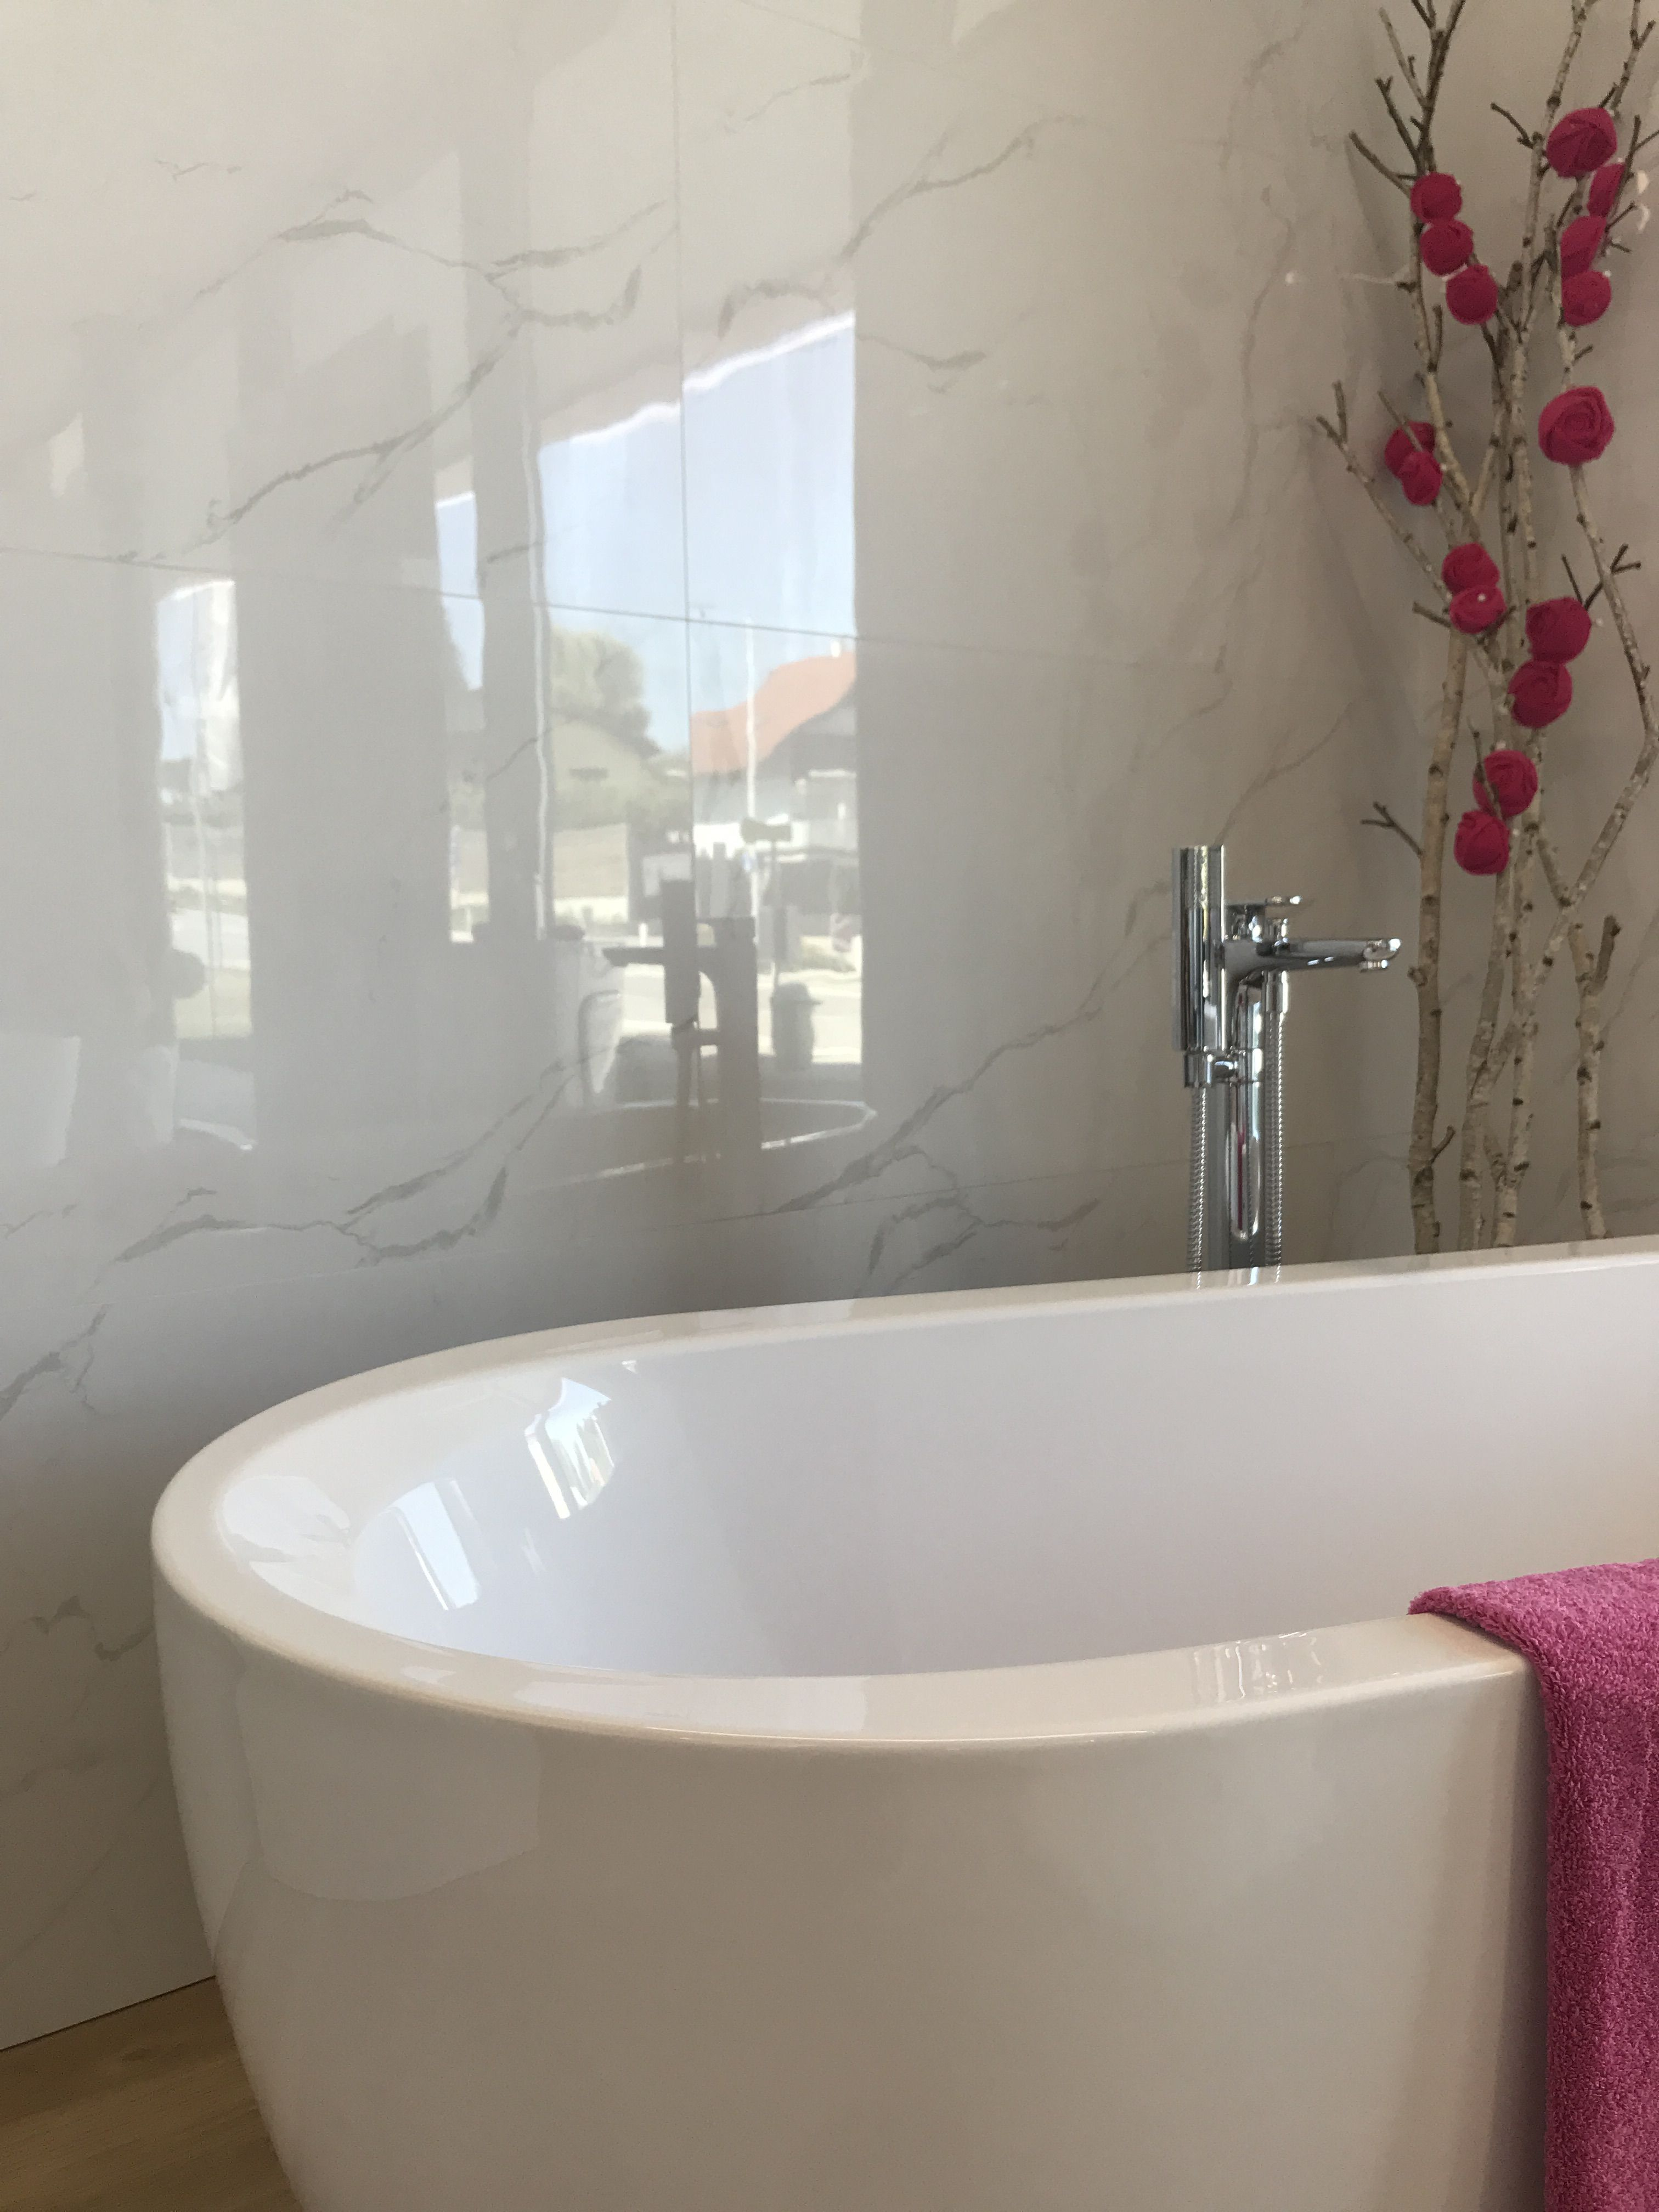 Wow How This Bathroom Shines An Absolute Girl S Dream With The Pink Flowers Bathroomdesign Bathroomins Badezimmer Design Badezimmer Badewanne Ideen